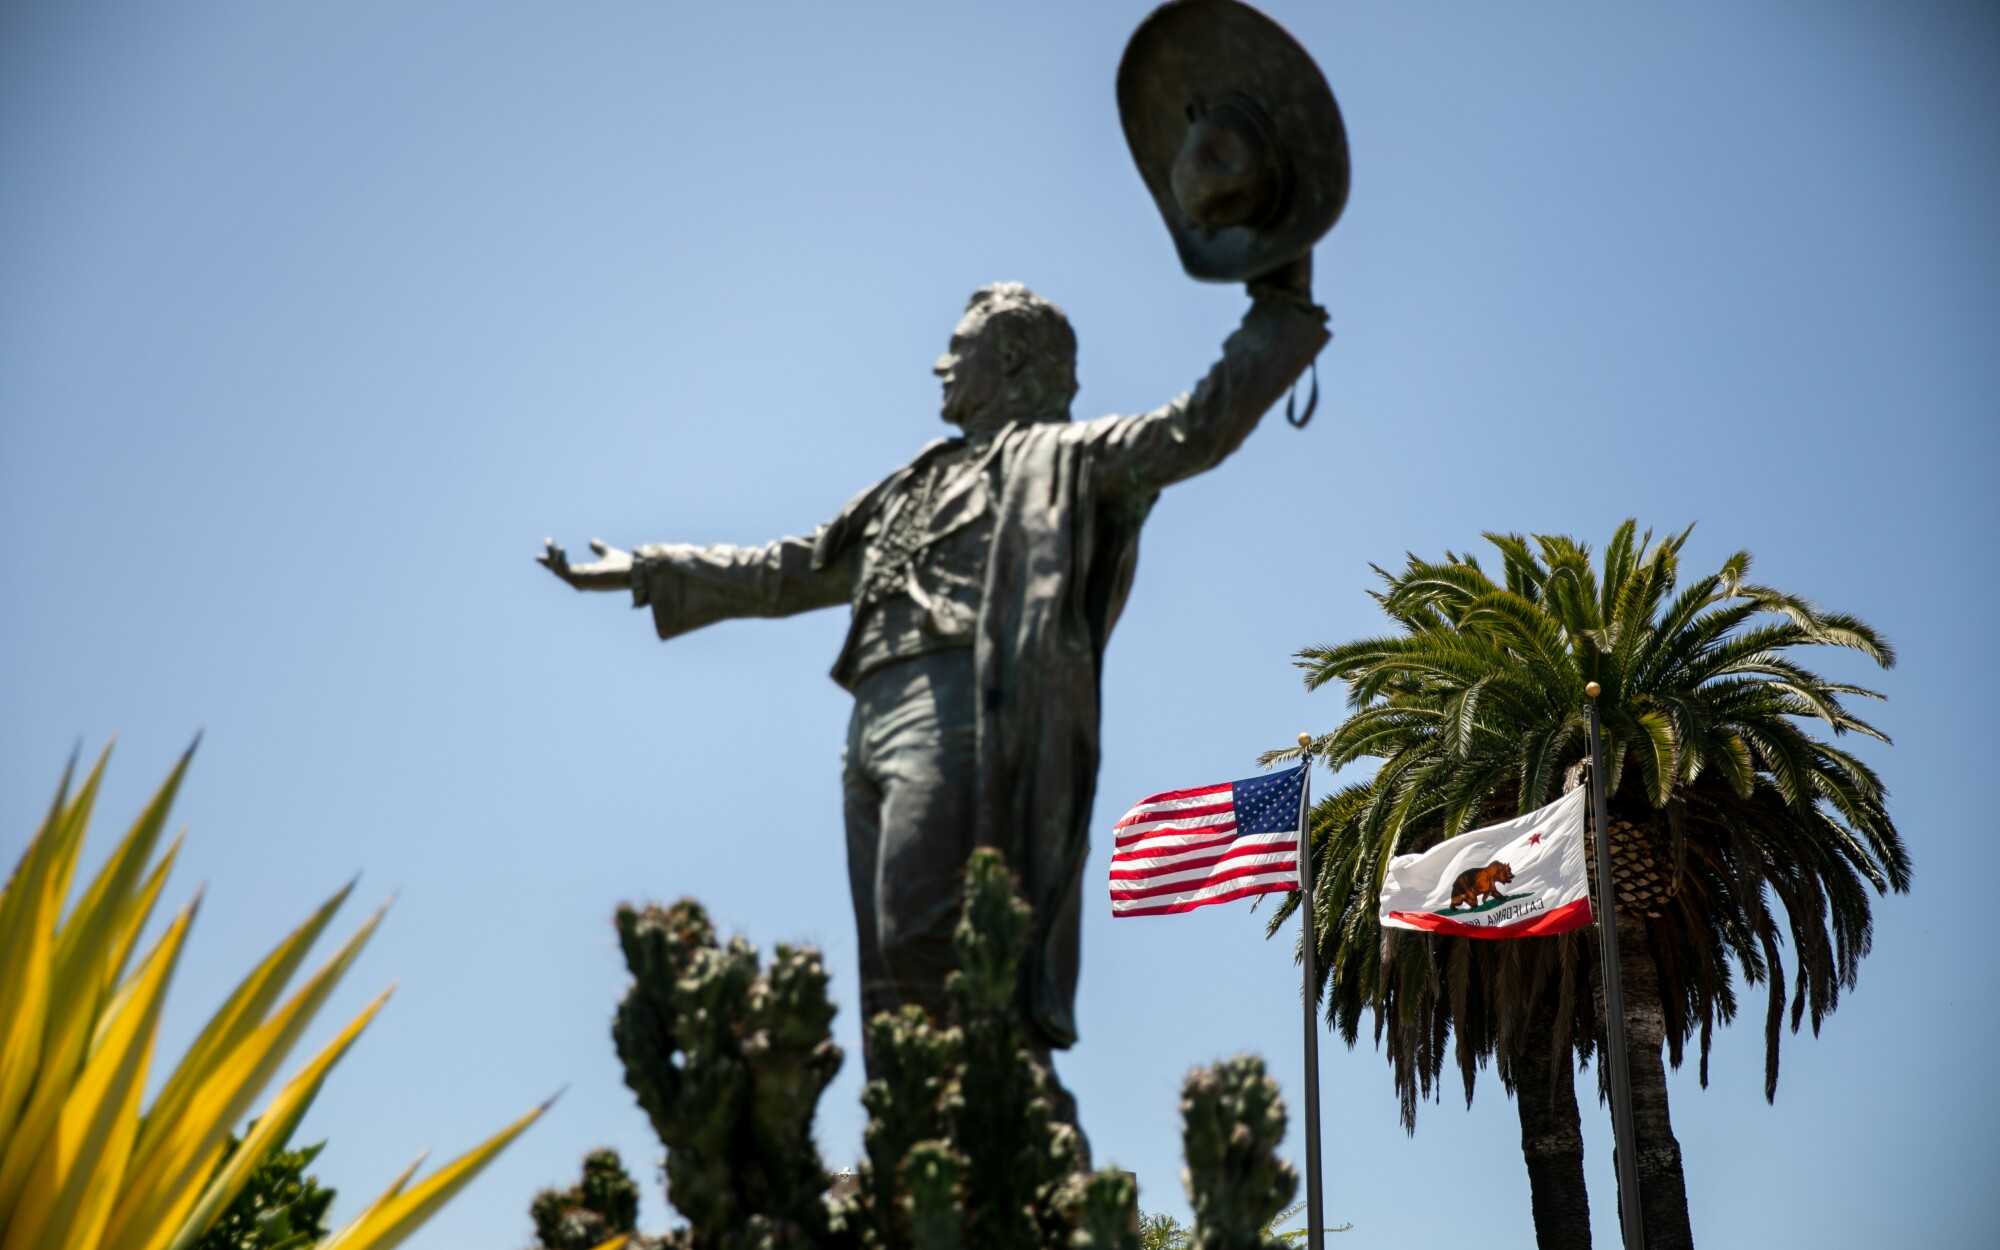 A statue of Don Diego, the late fair ambassador, stands at the gate to the Del Mar Fairgrounds on Wednesday. Fairgrounds officials are asking people to support a request for $20 million in federal aid to help them weather the financial blow they've taken during the pandemic.